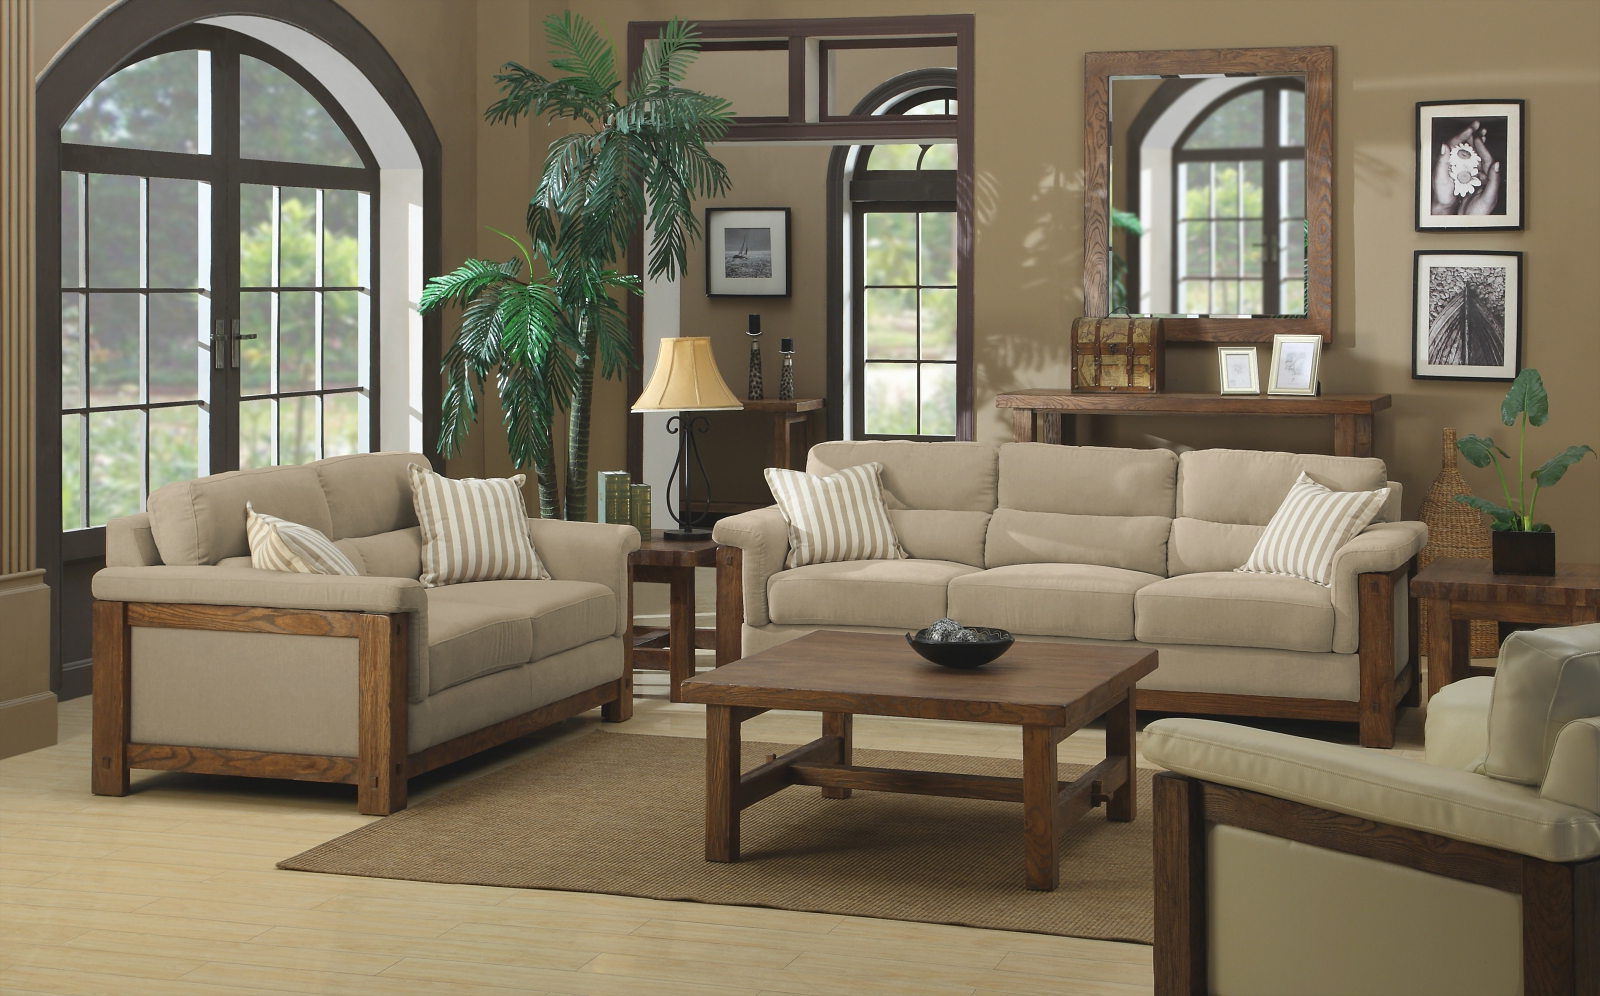 Living room in beige color - Living room color ideas ...